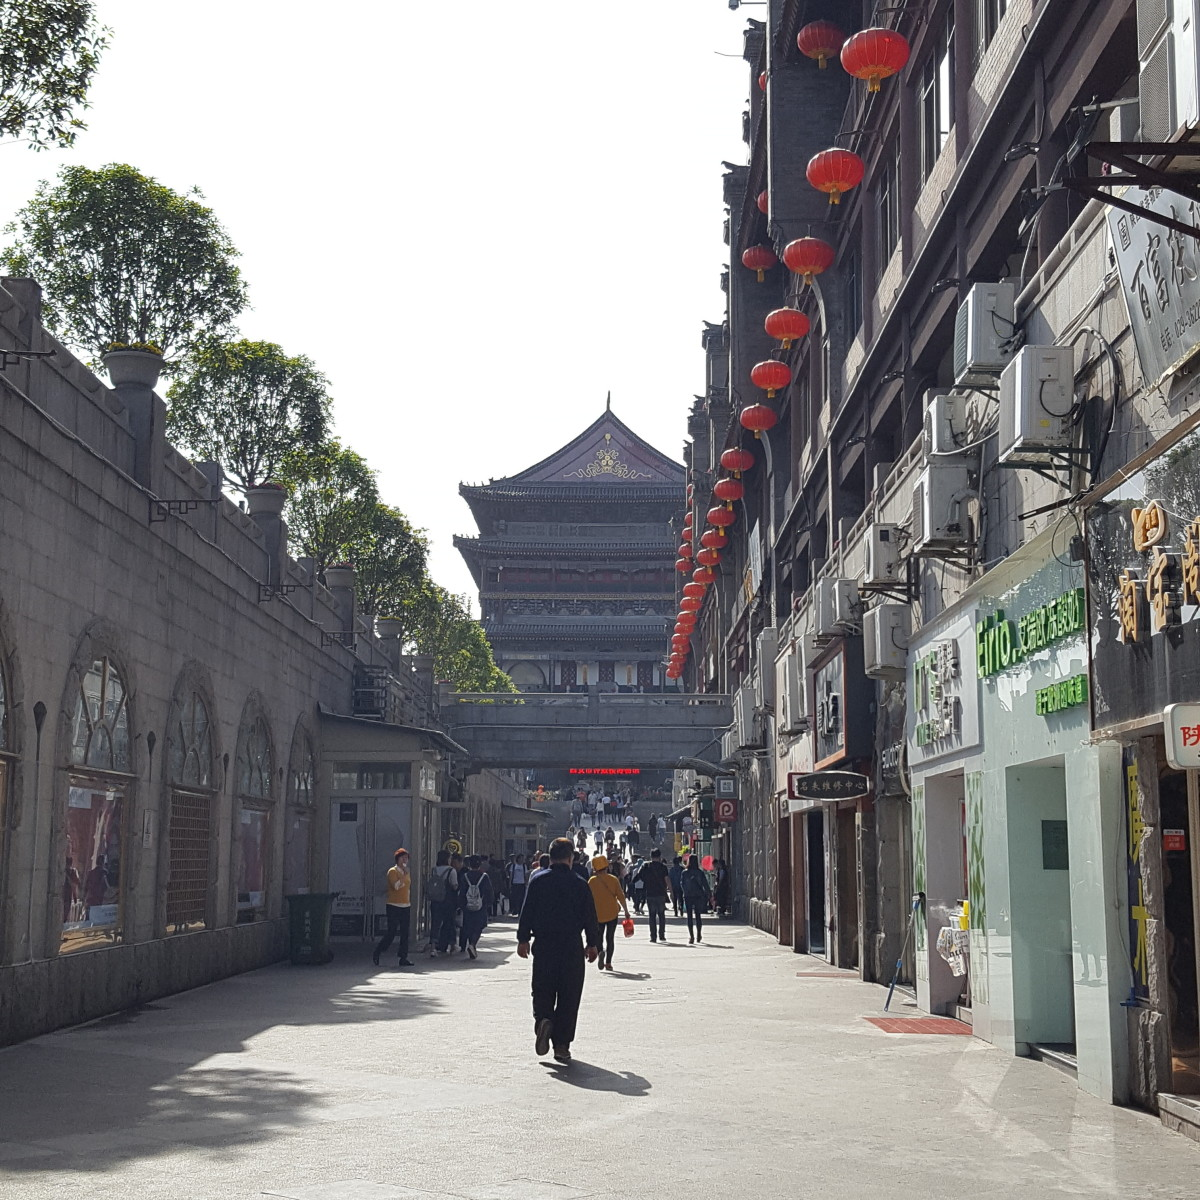 The Drum Tower appears at the end of the street.